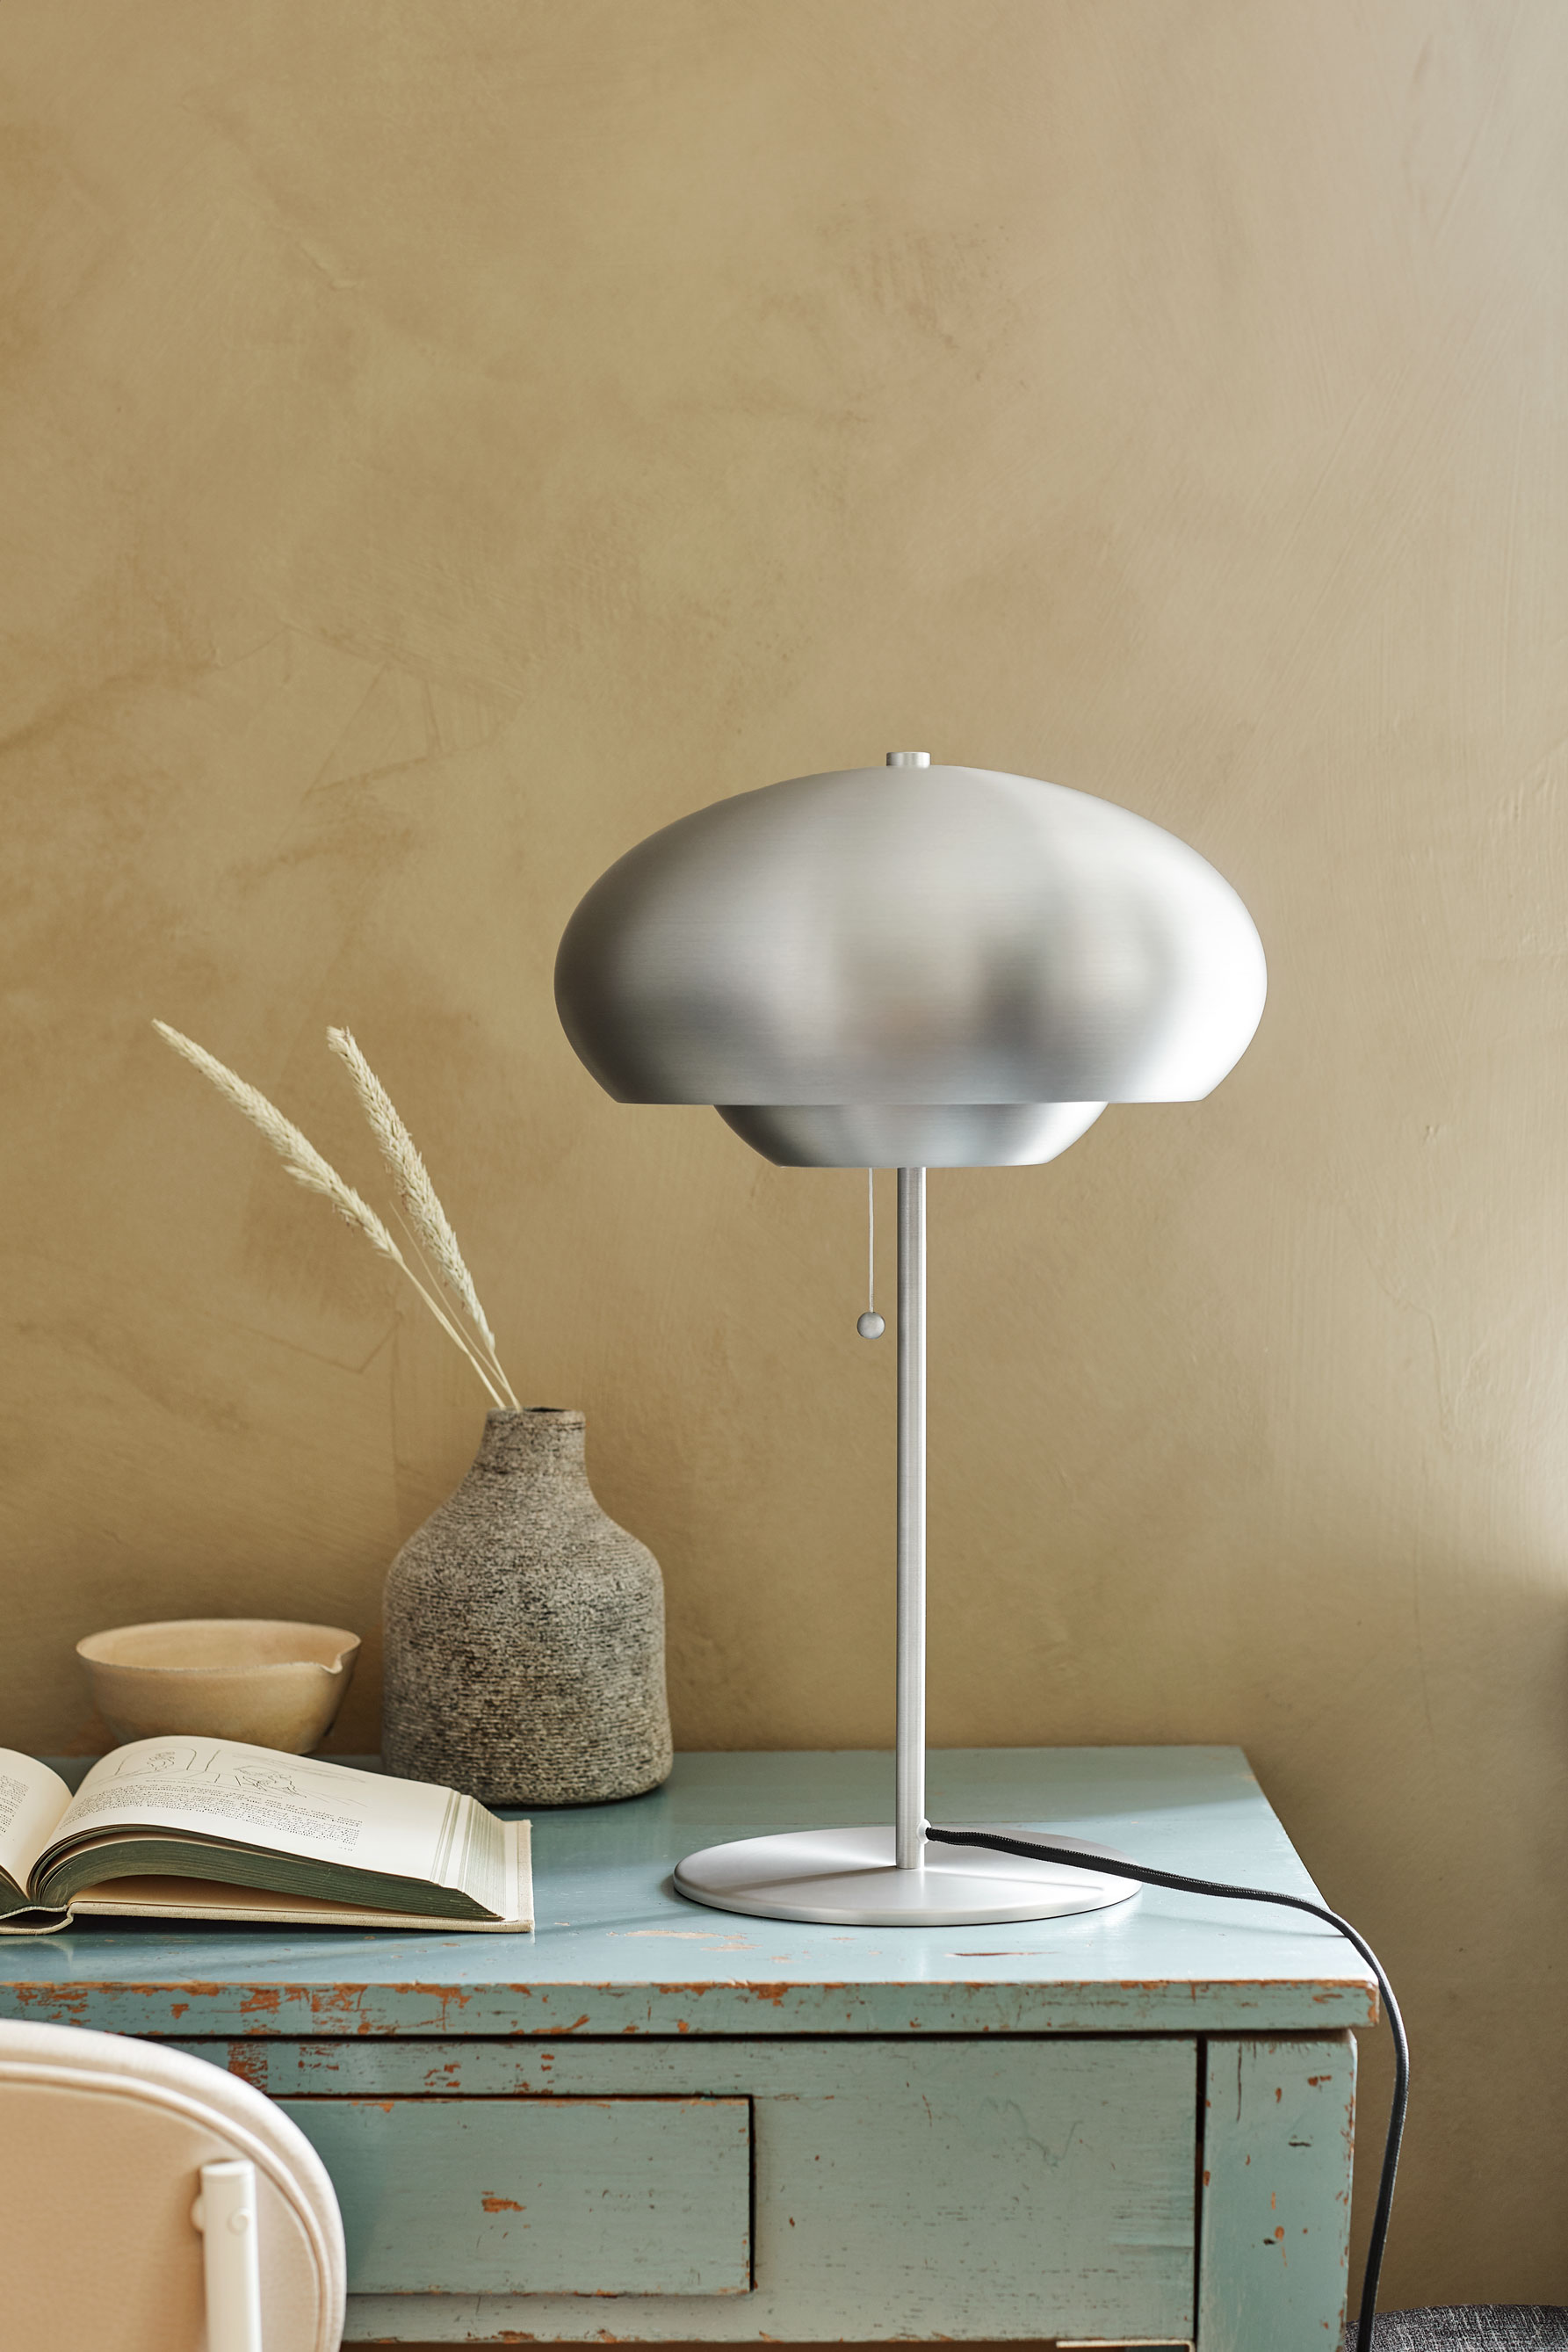 Champ-table-lamp-brushed-aluminium-matt---Lifestyle-Obdrupgård-2443.jpg